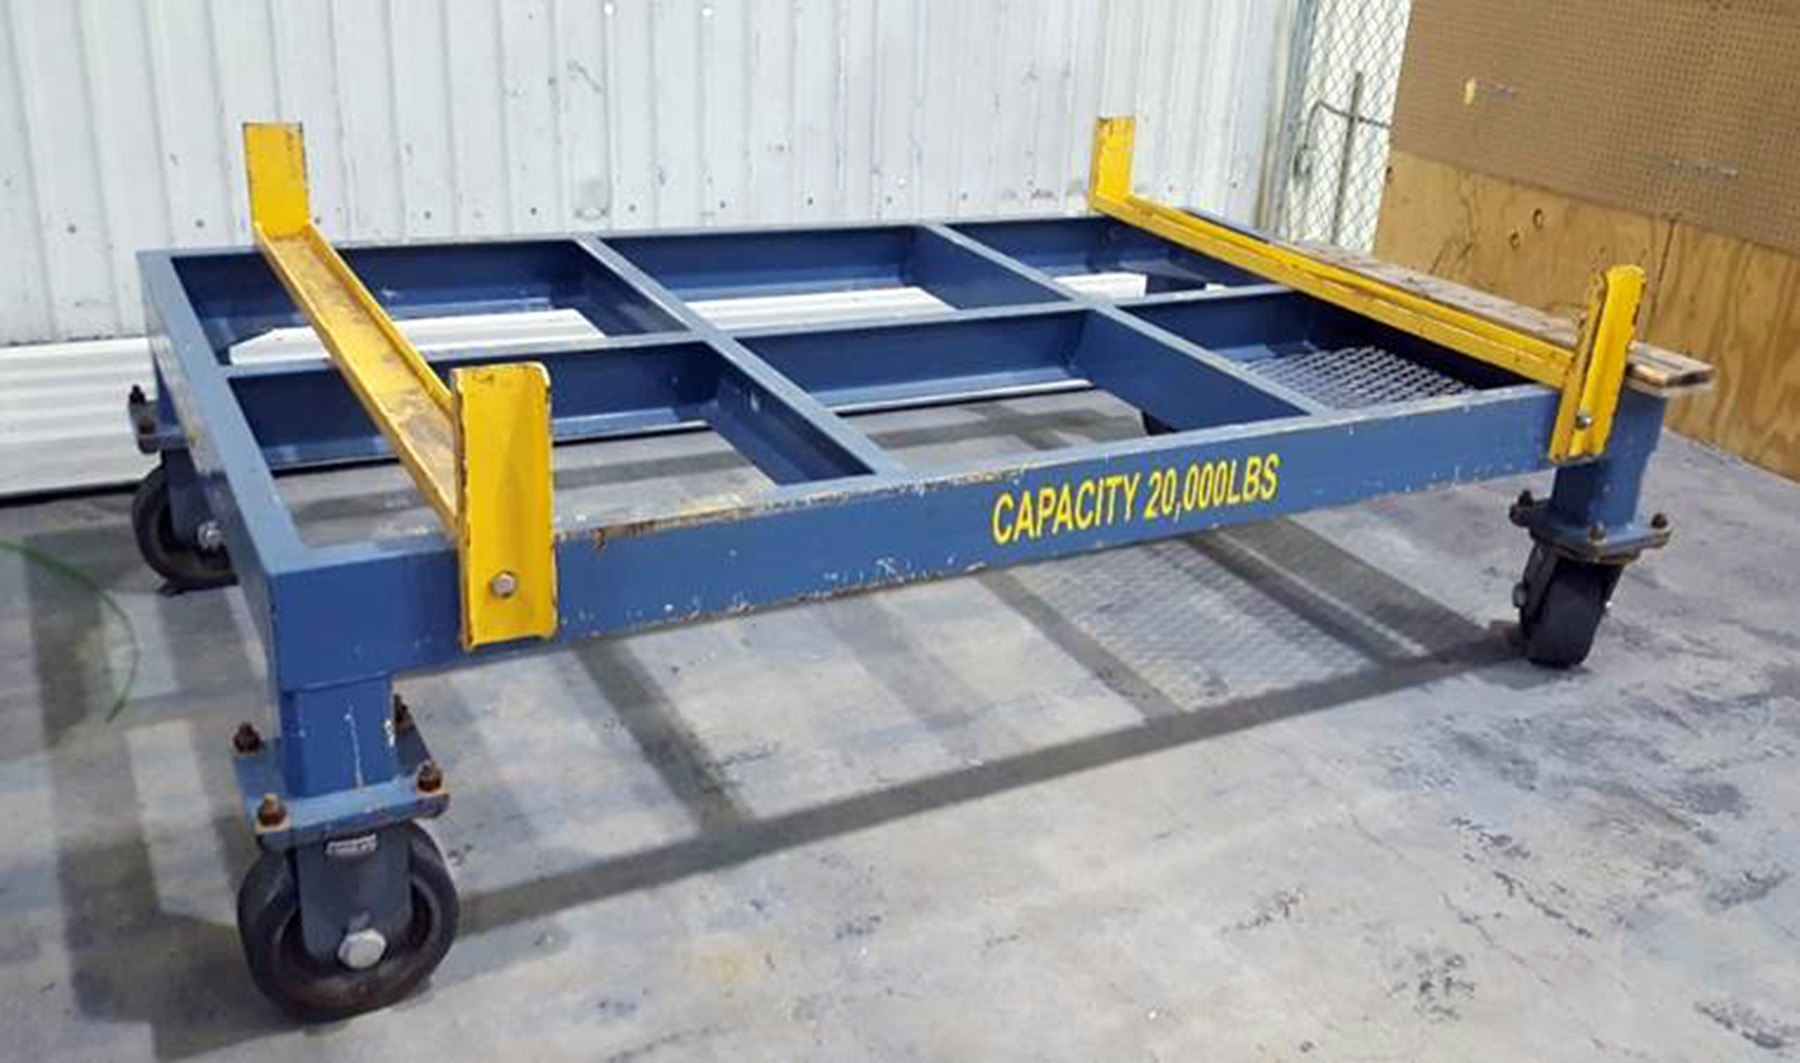 USED, 20,000 LB. CAPACITY CUSTOM STEEL FRAME TRANSFER CART ON CASTERS